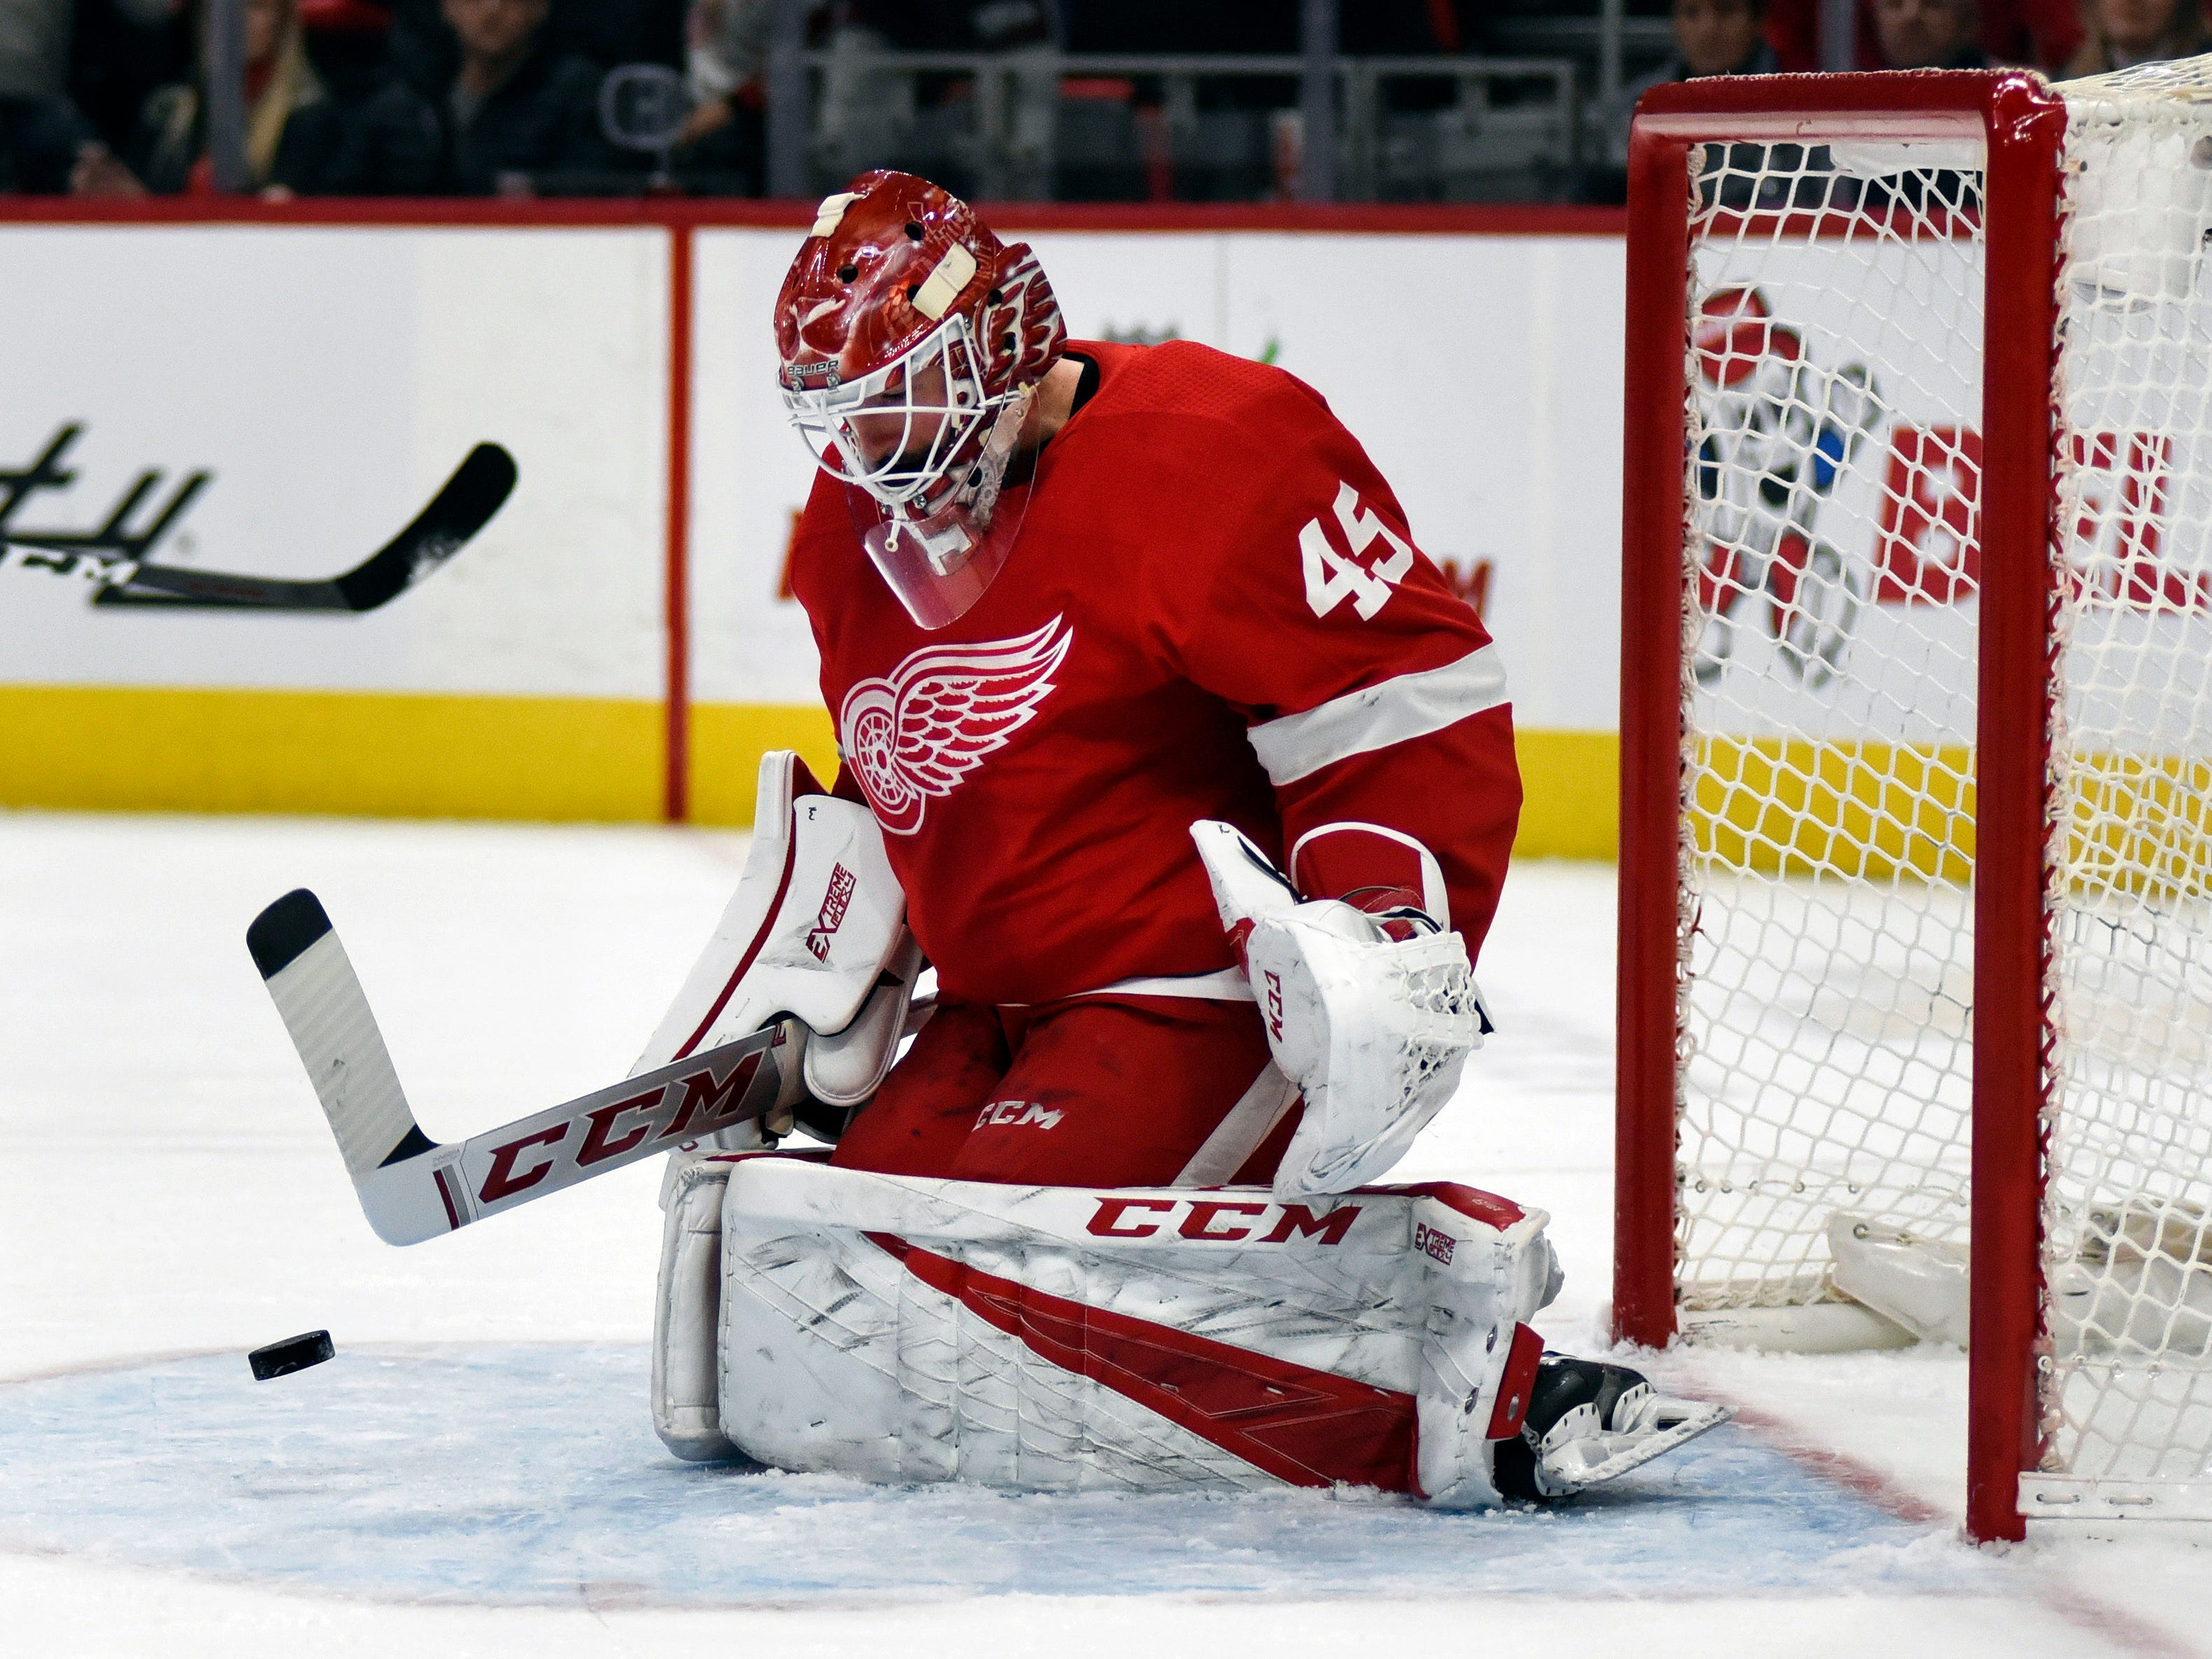 Detroit Red Wings goaltender Jonathan Bernier deflects a shot by the Colorado Avalanche in the first period of an NHL hockey game in Detroit, Sunday, Dec. 2, 2018.